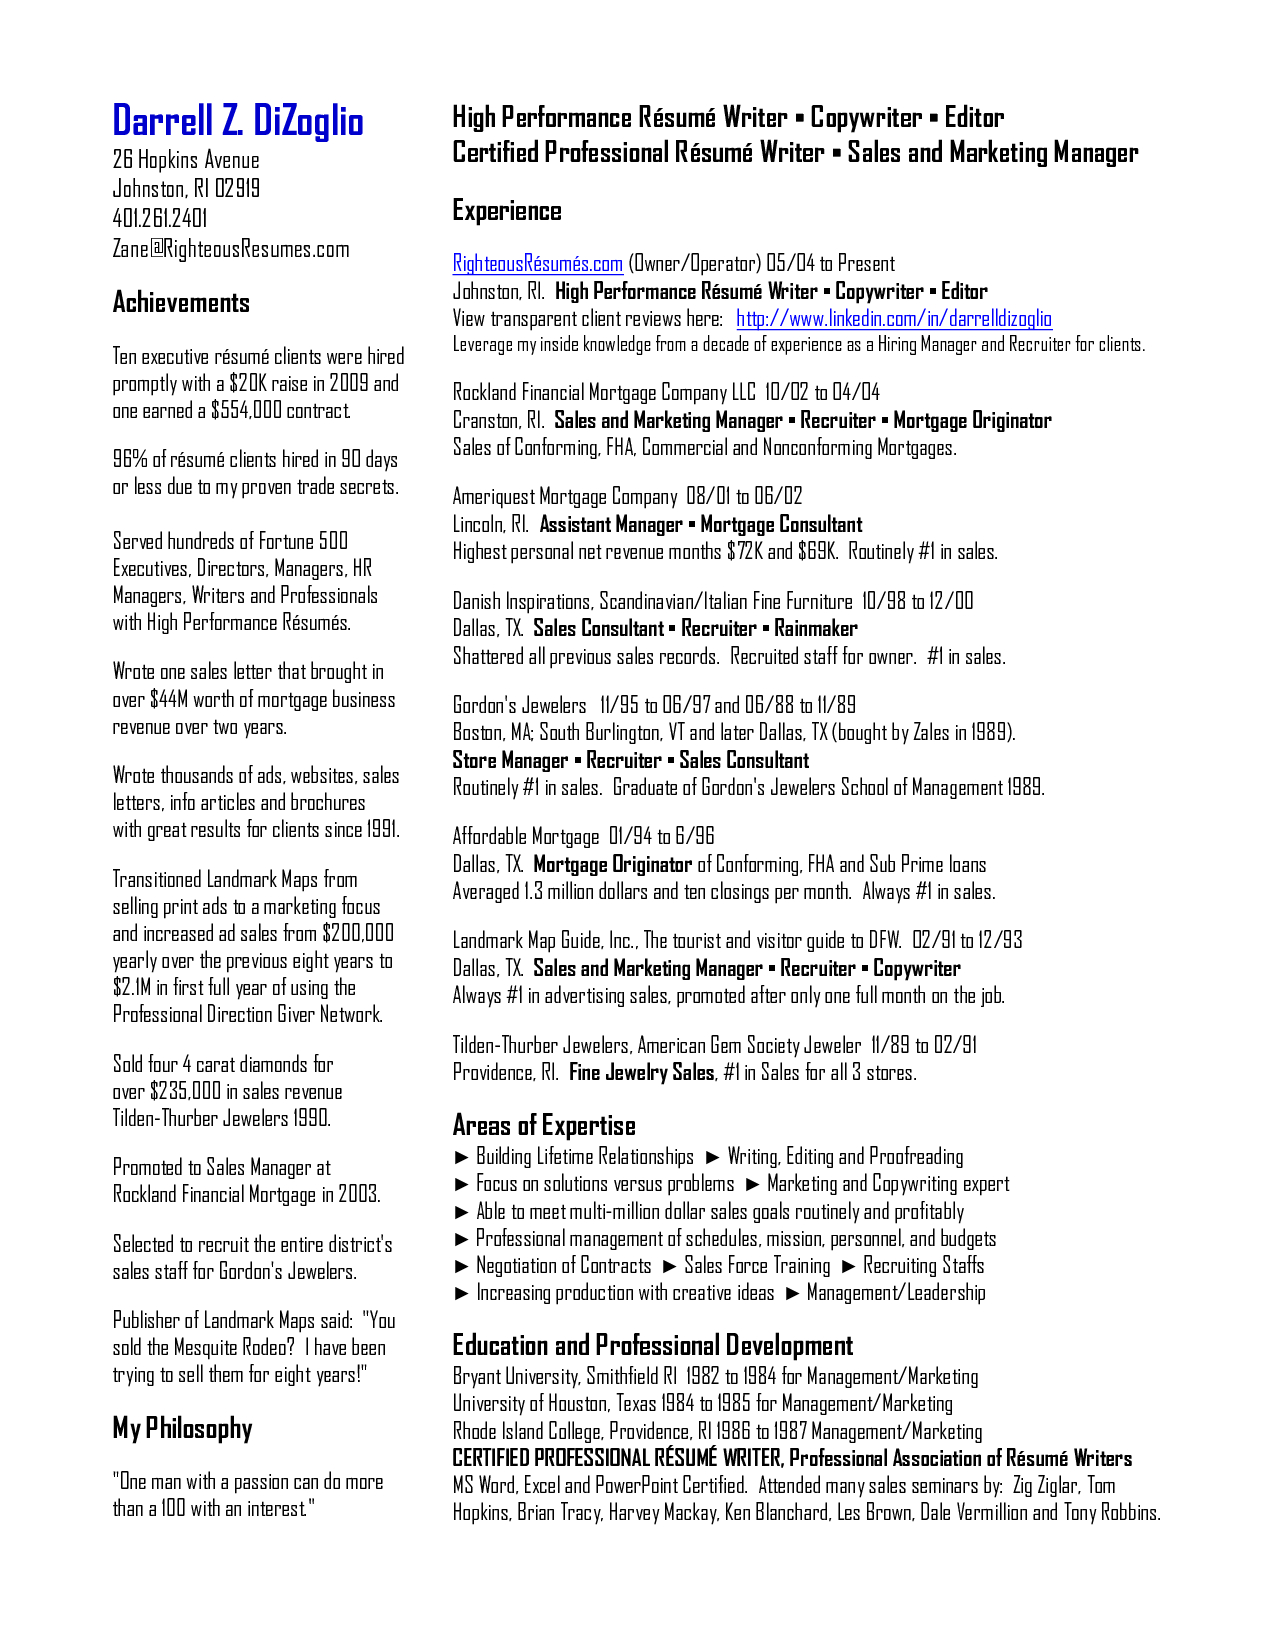 Professional Resume Services - Resume Service Best Templatewriting A Resume Cover Letter Examples